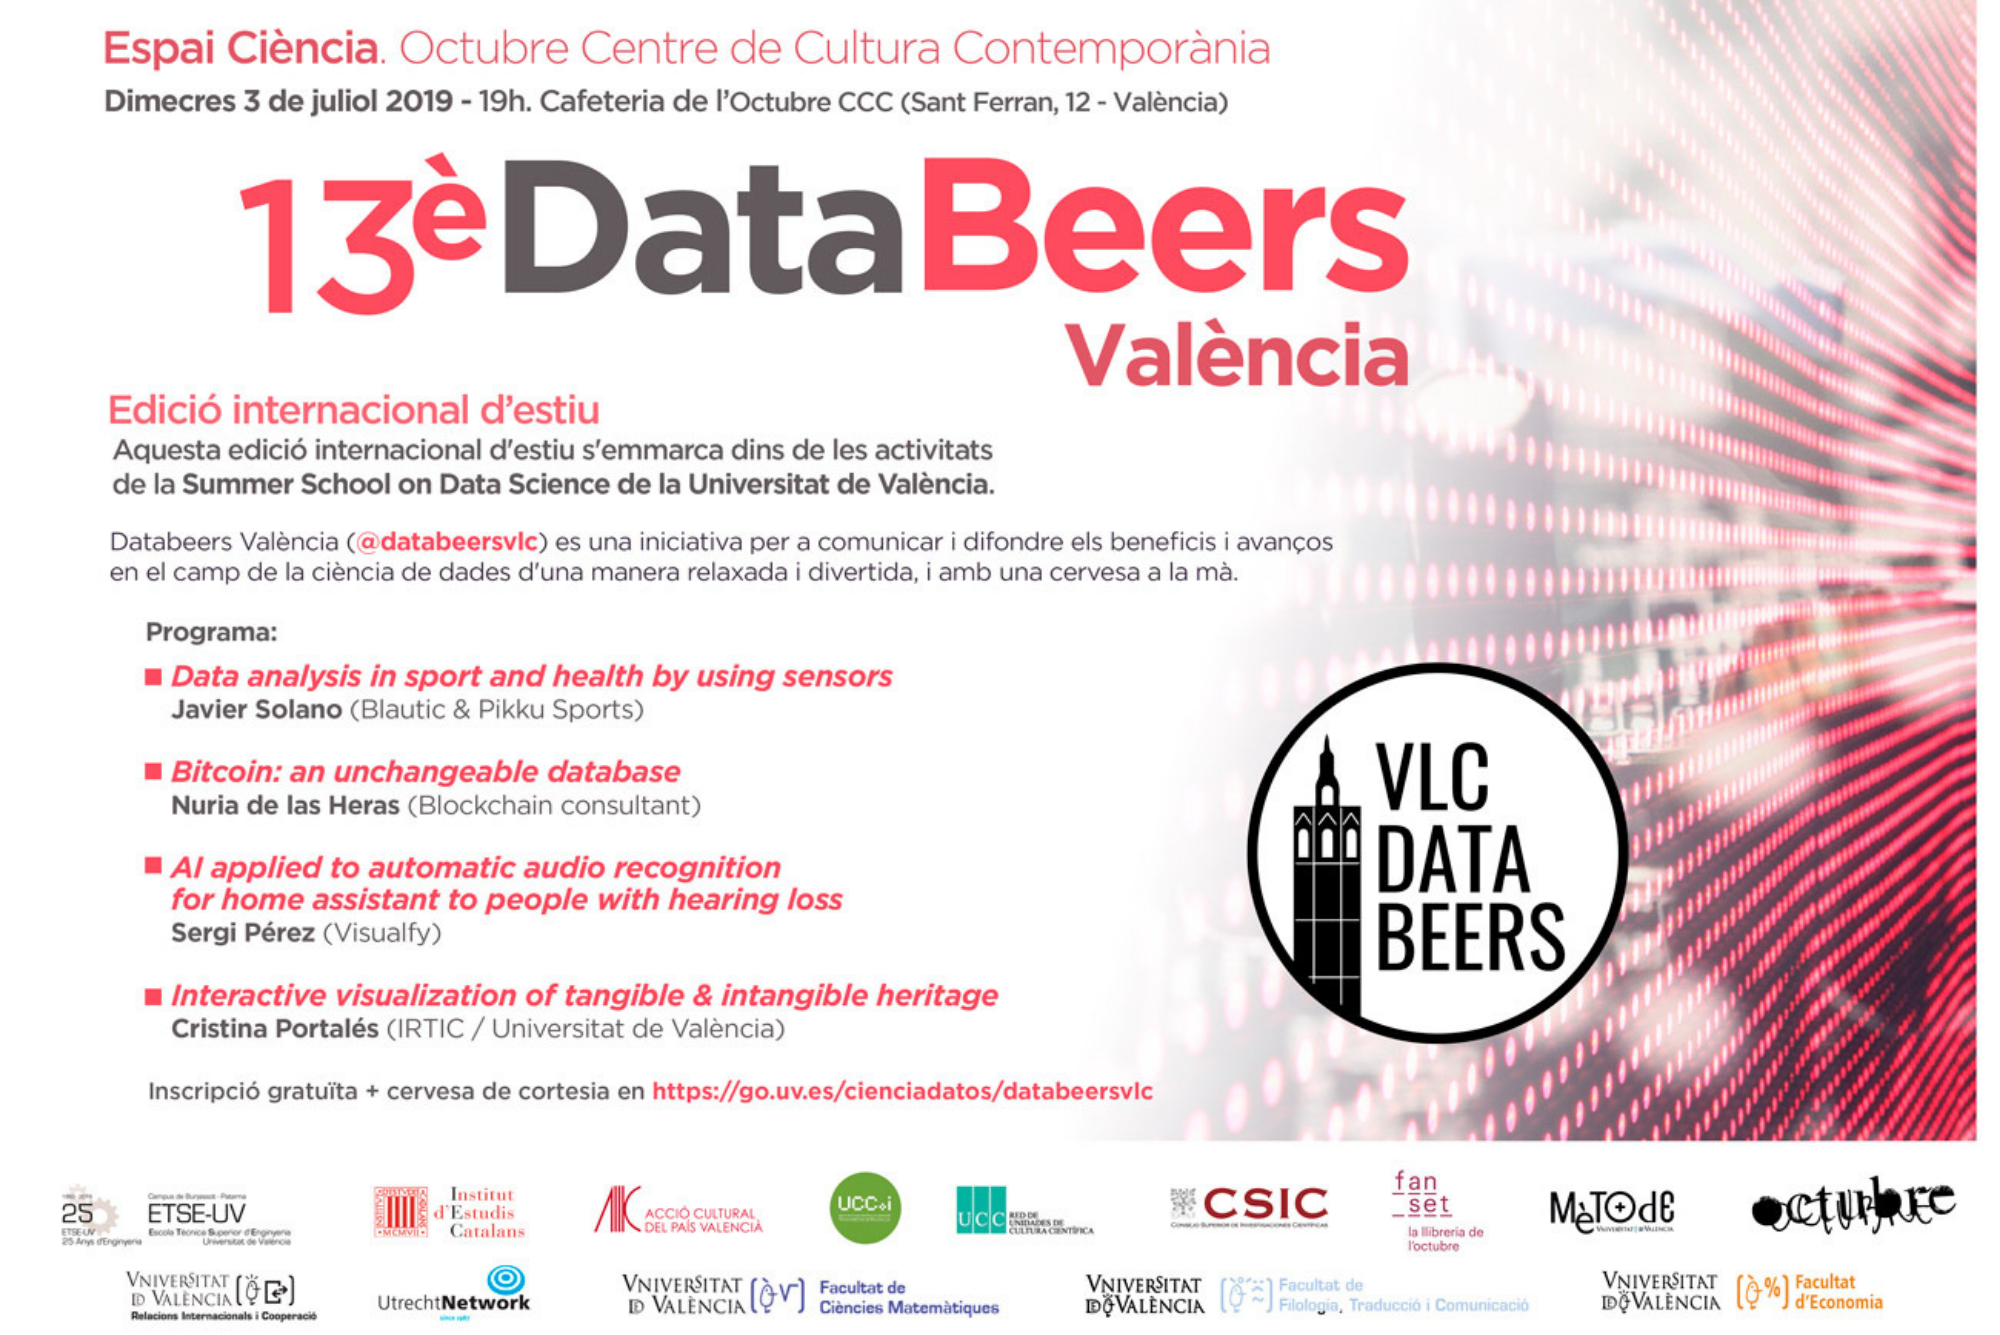 Data Beers València organises its 13th edition in the II Summer School on Data Science of the UV